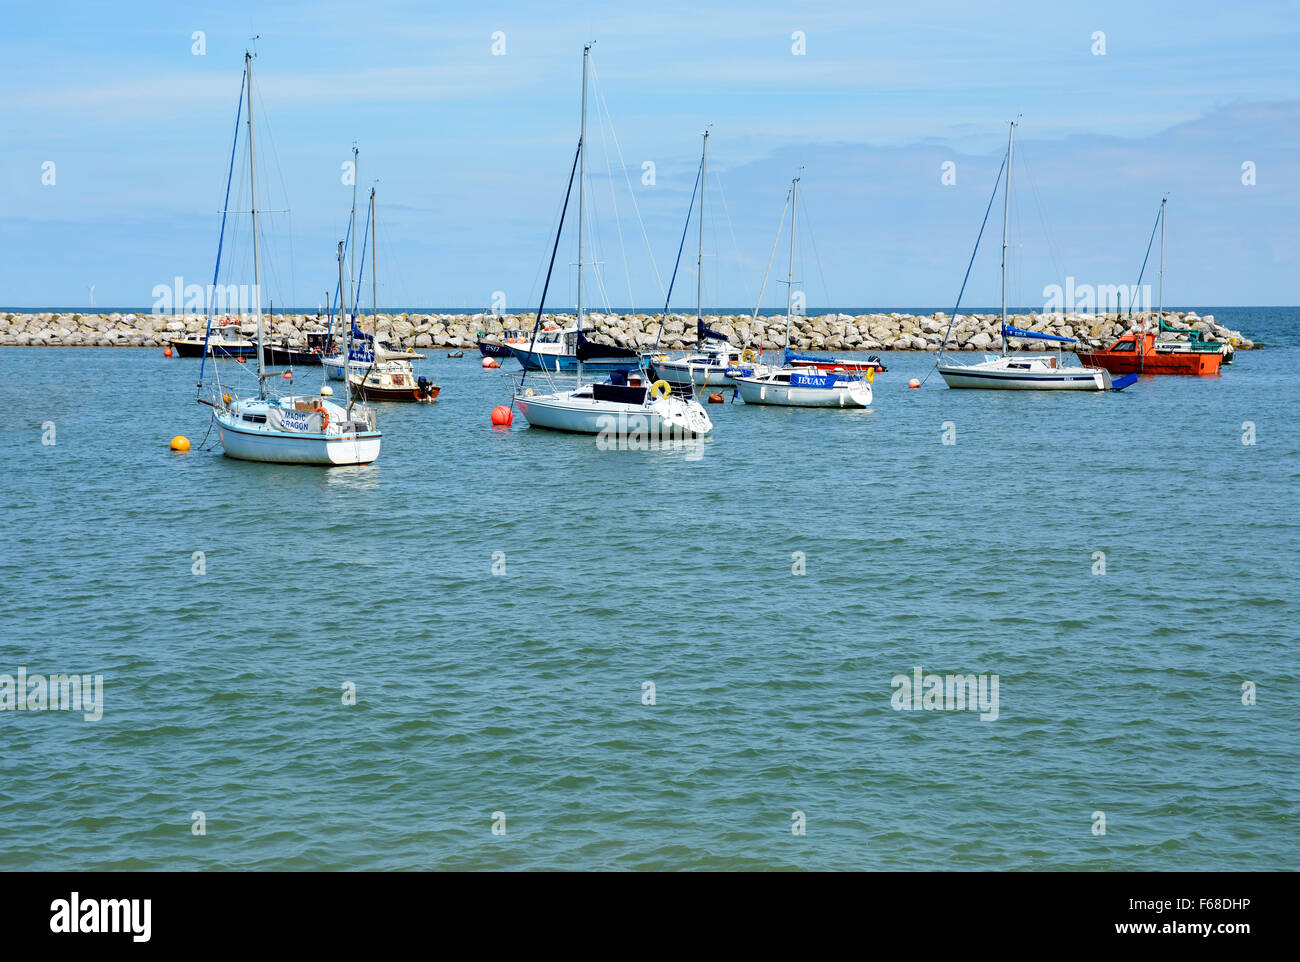 The harbour at Rhos-on-Sea - Stock Image